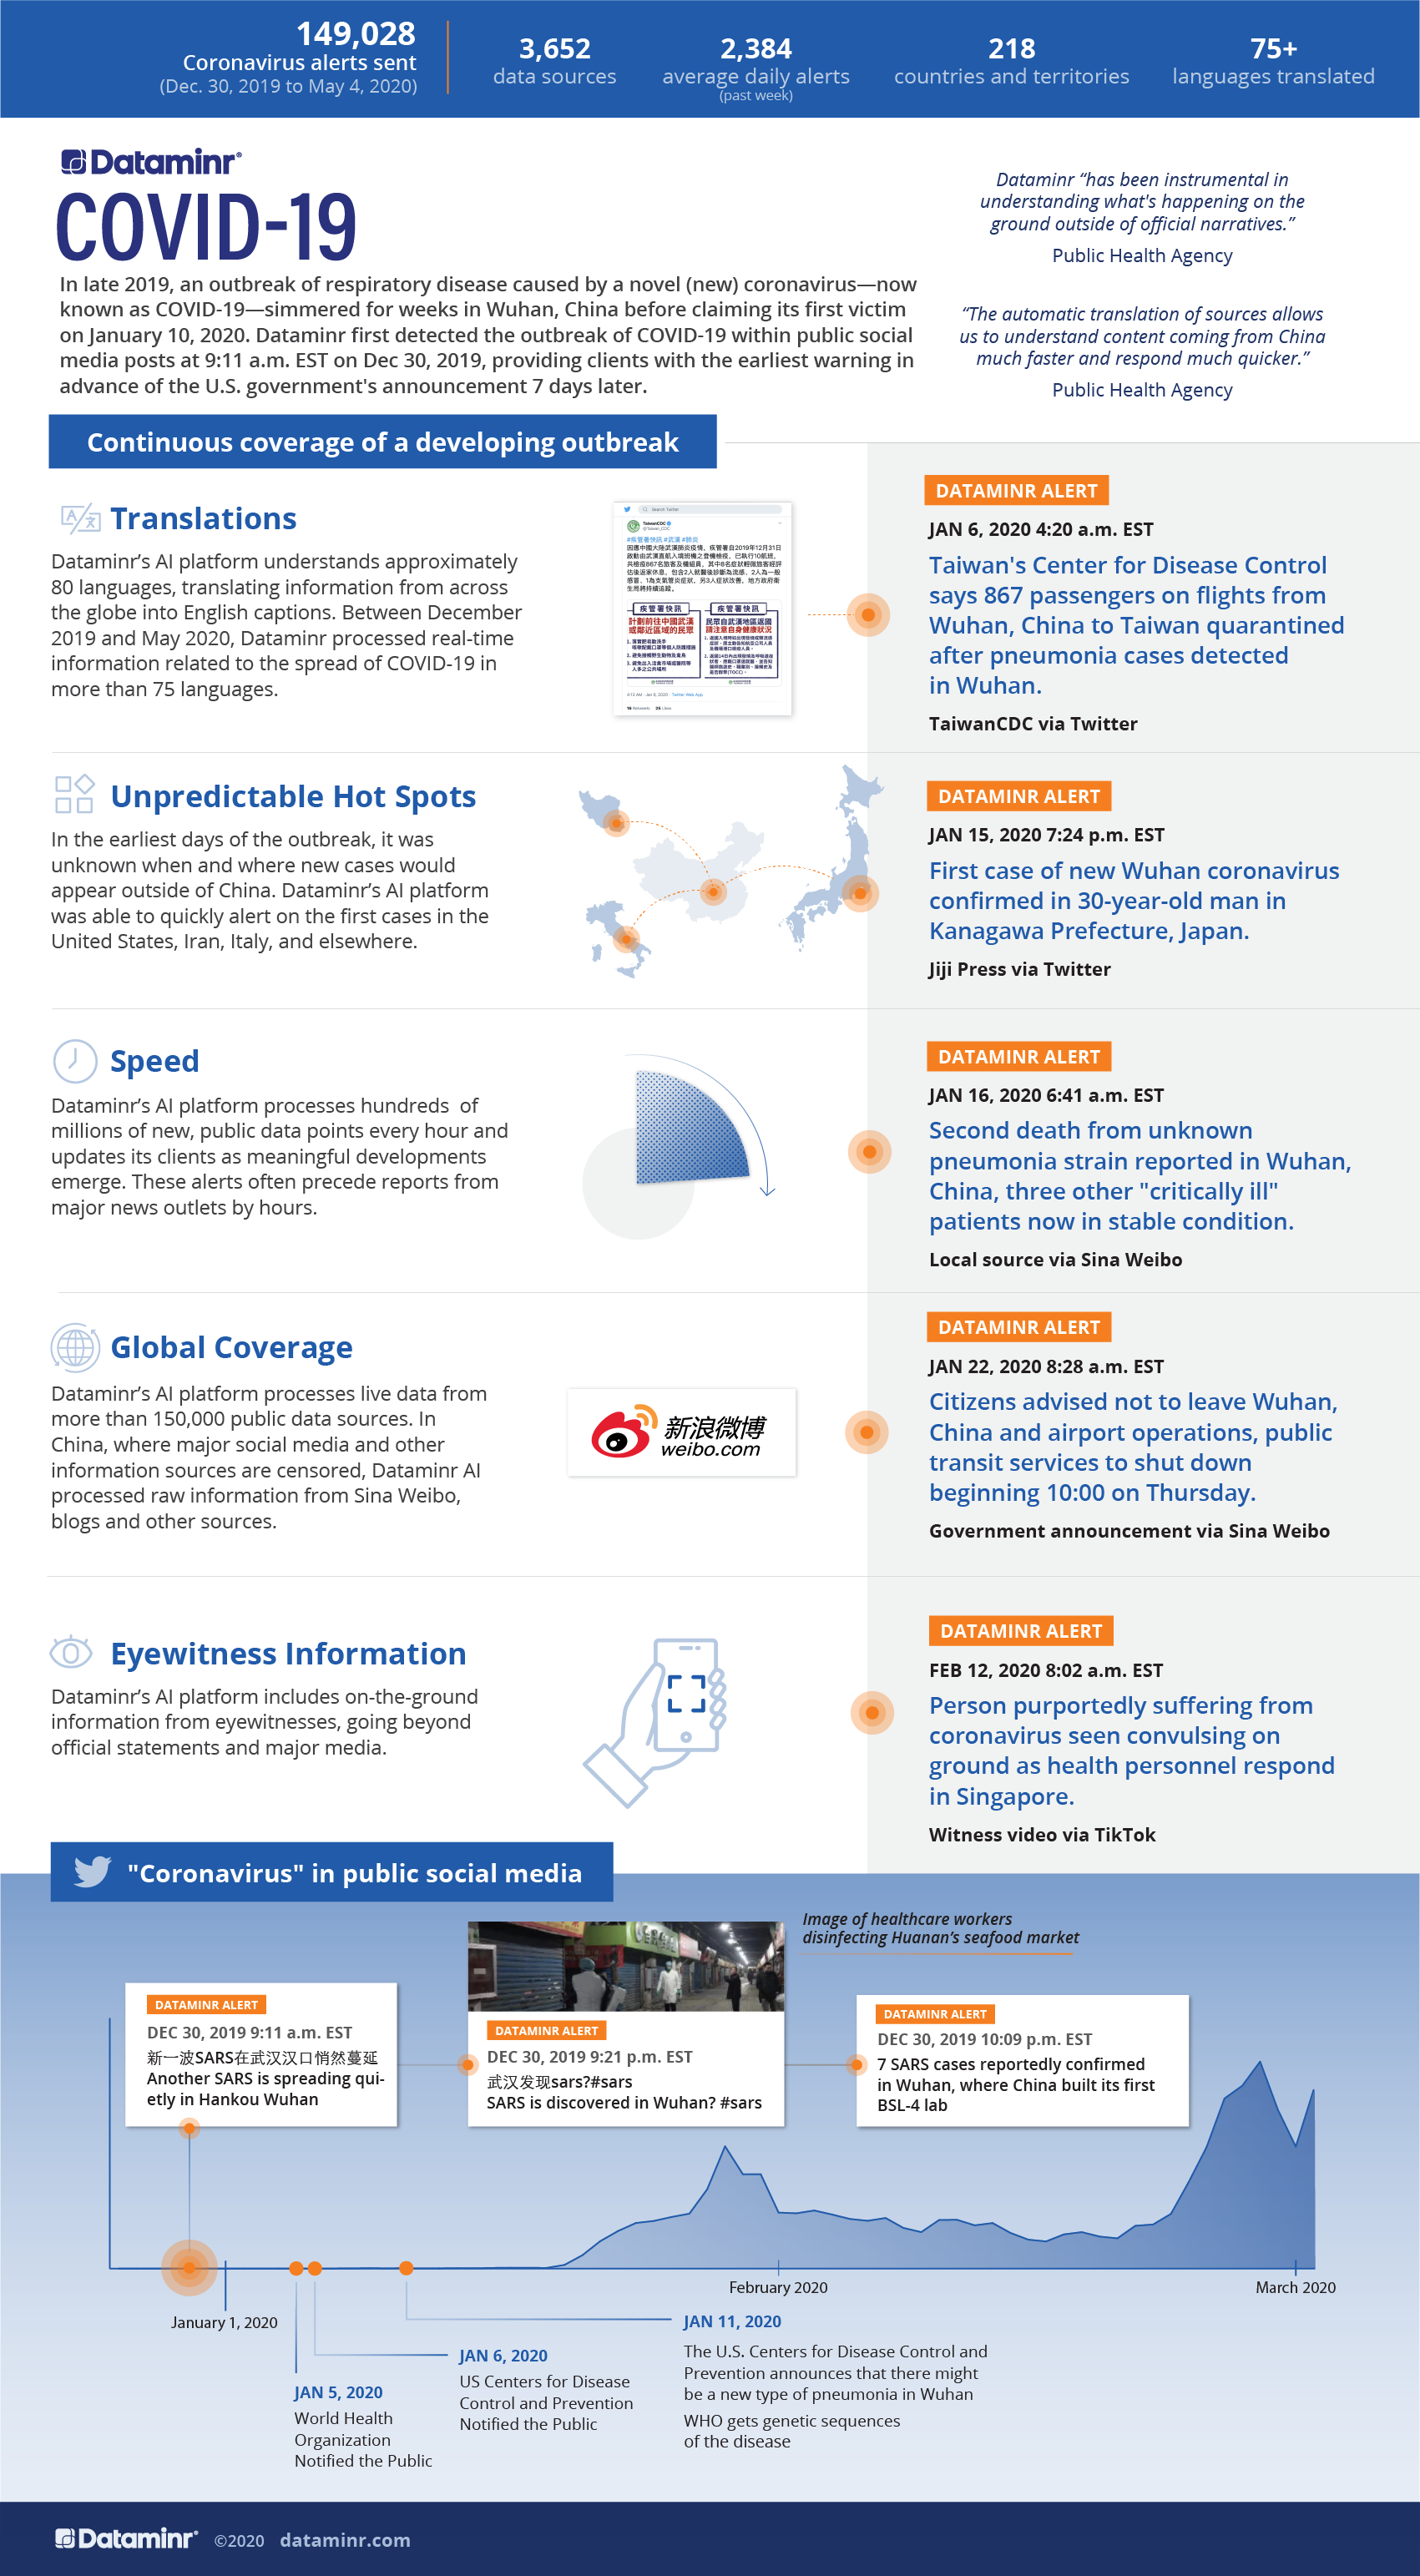 0420_Infographic_Covid-19_Continuous_Coverage_of_a_Developing_Outbreak